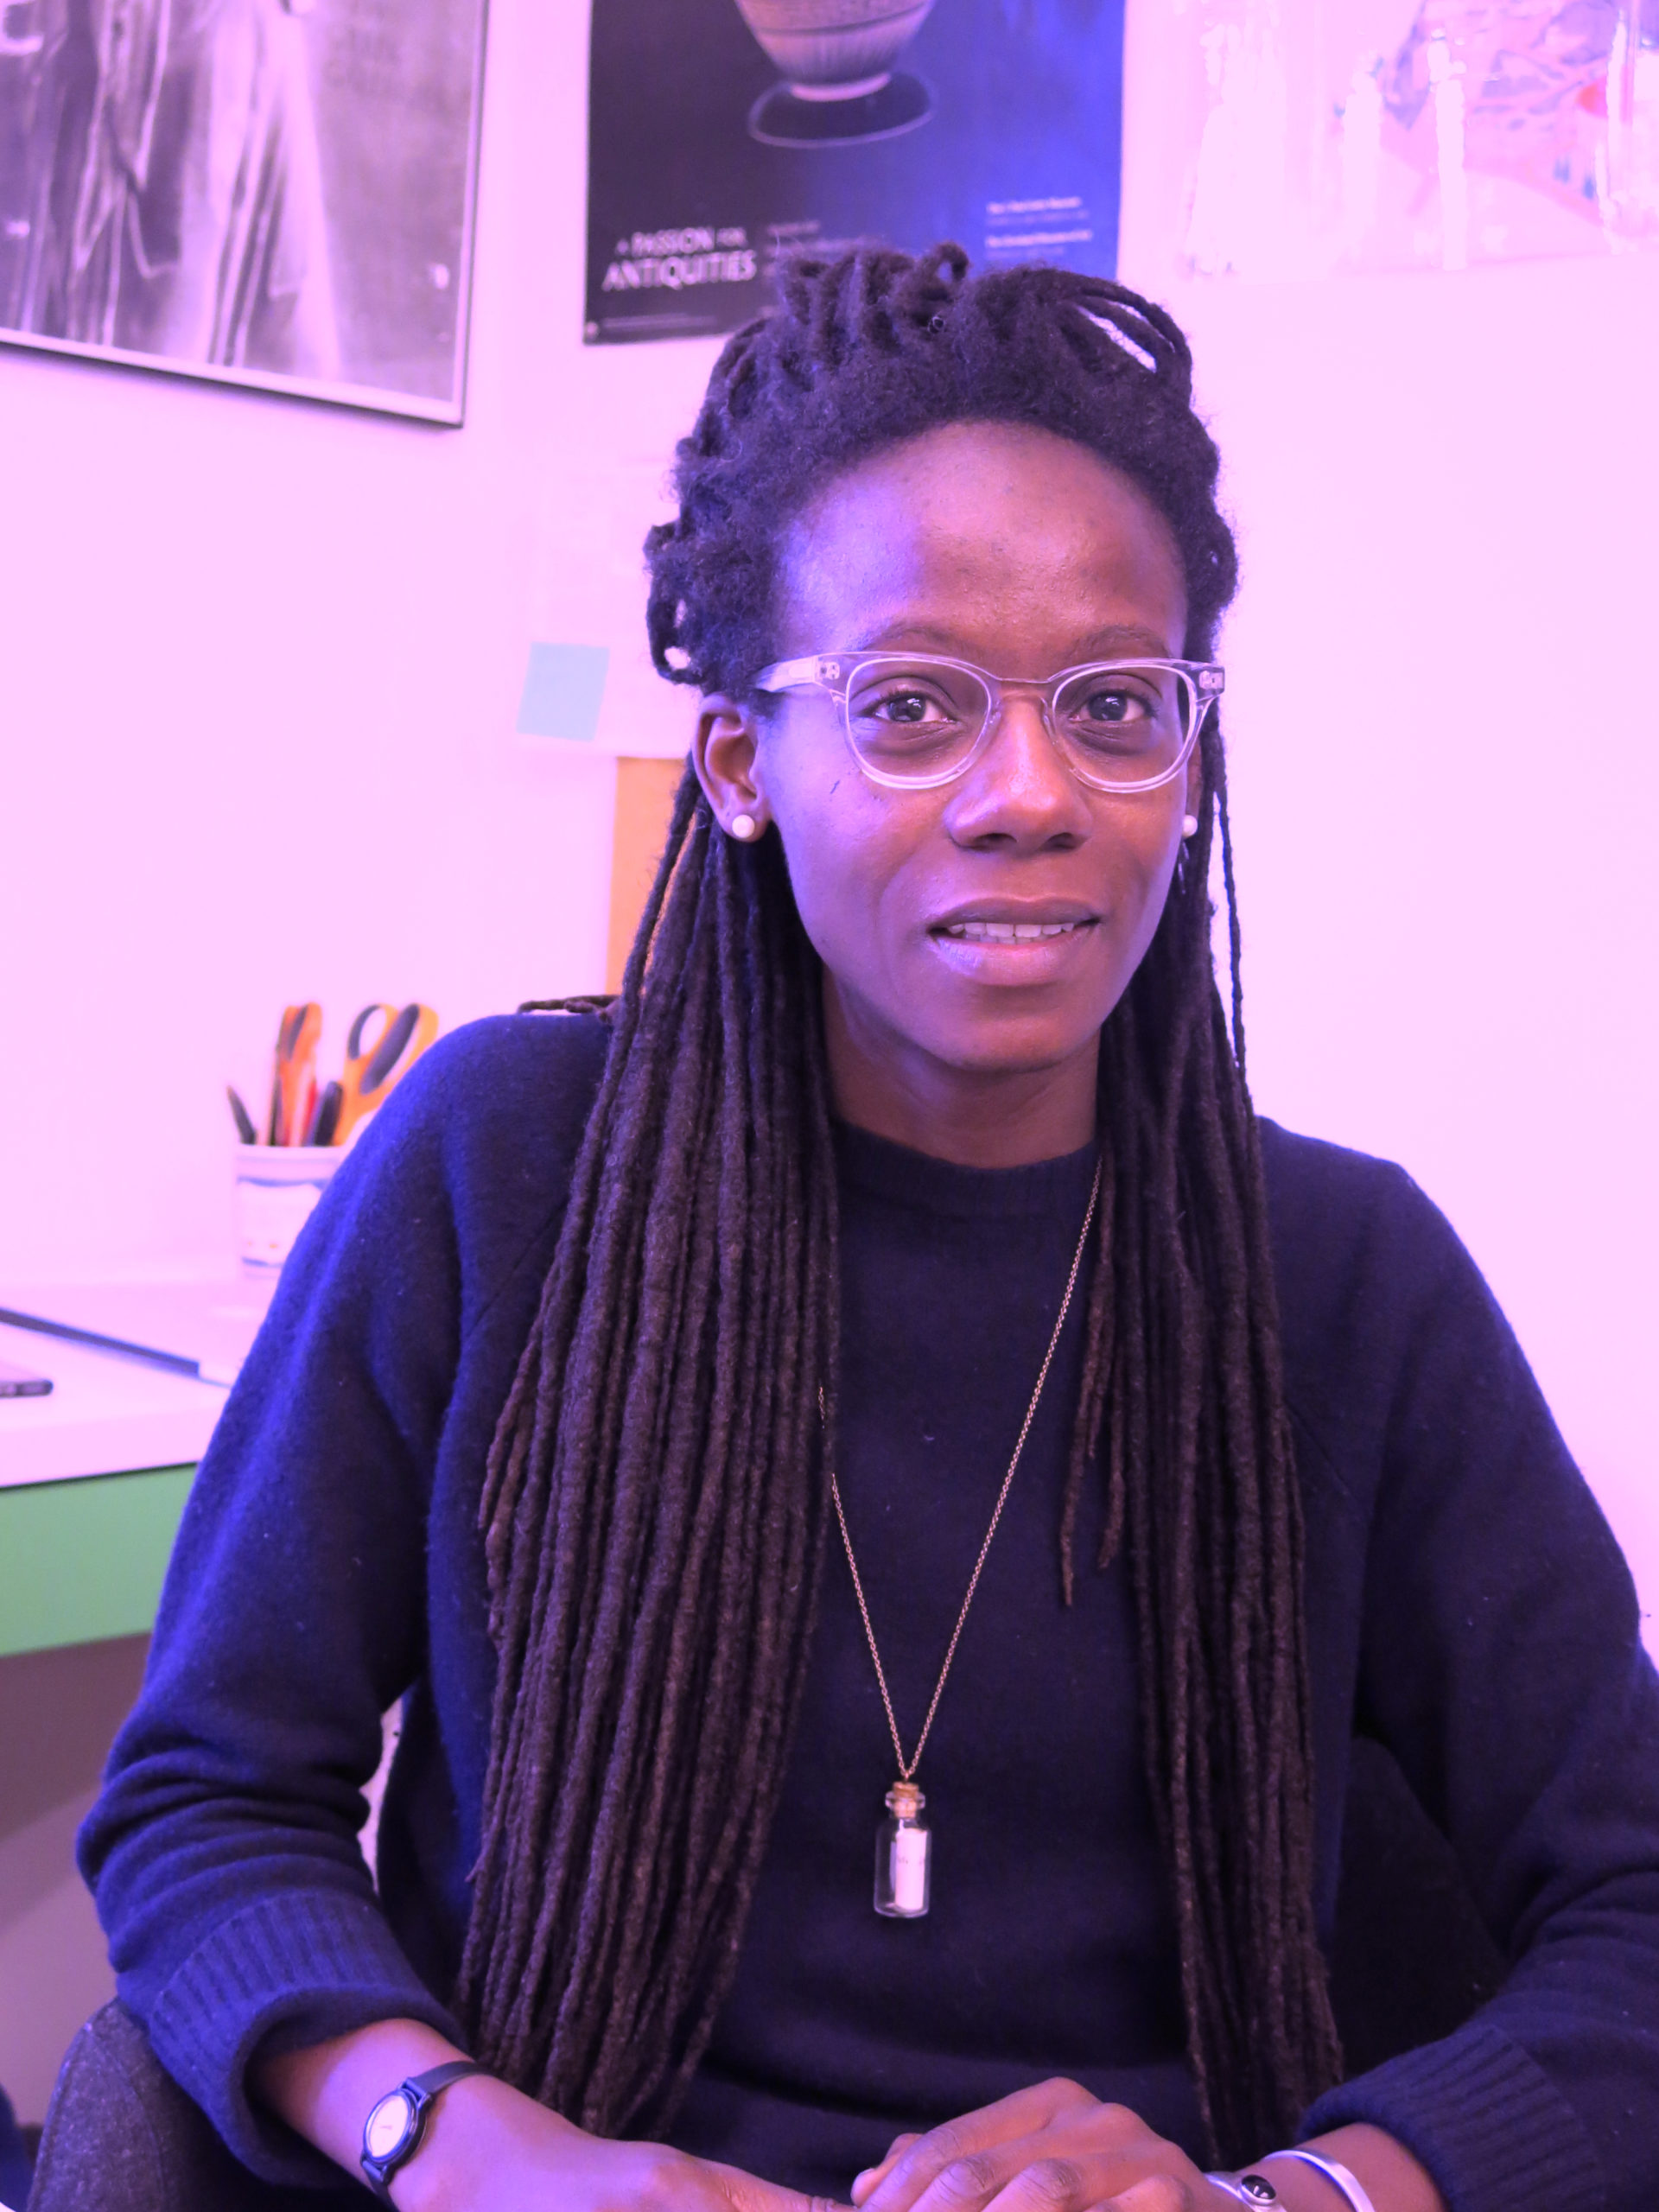 Asiya Wadud with long brown braids and clear glasses